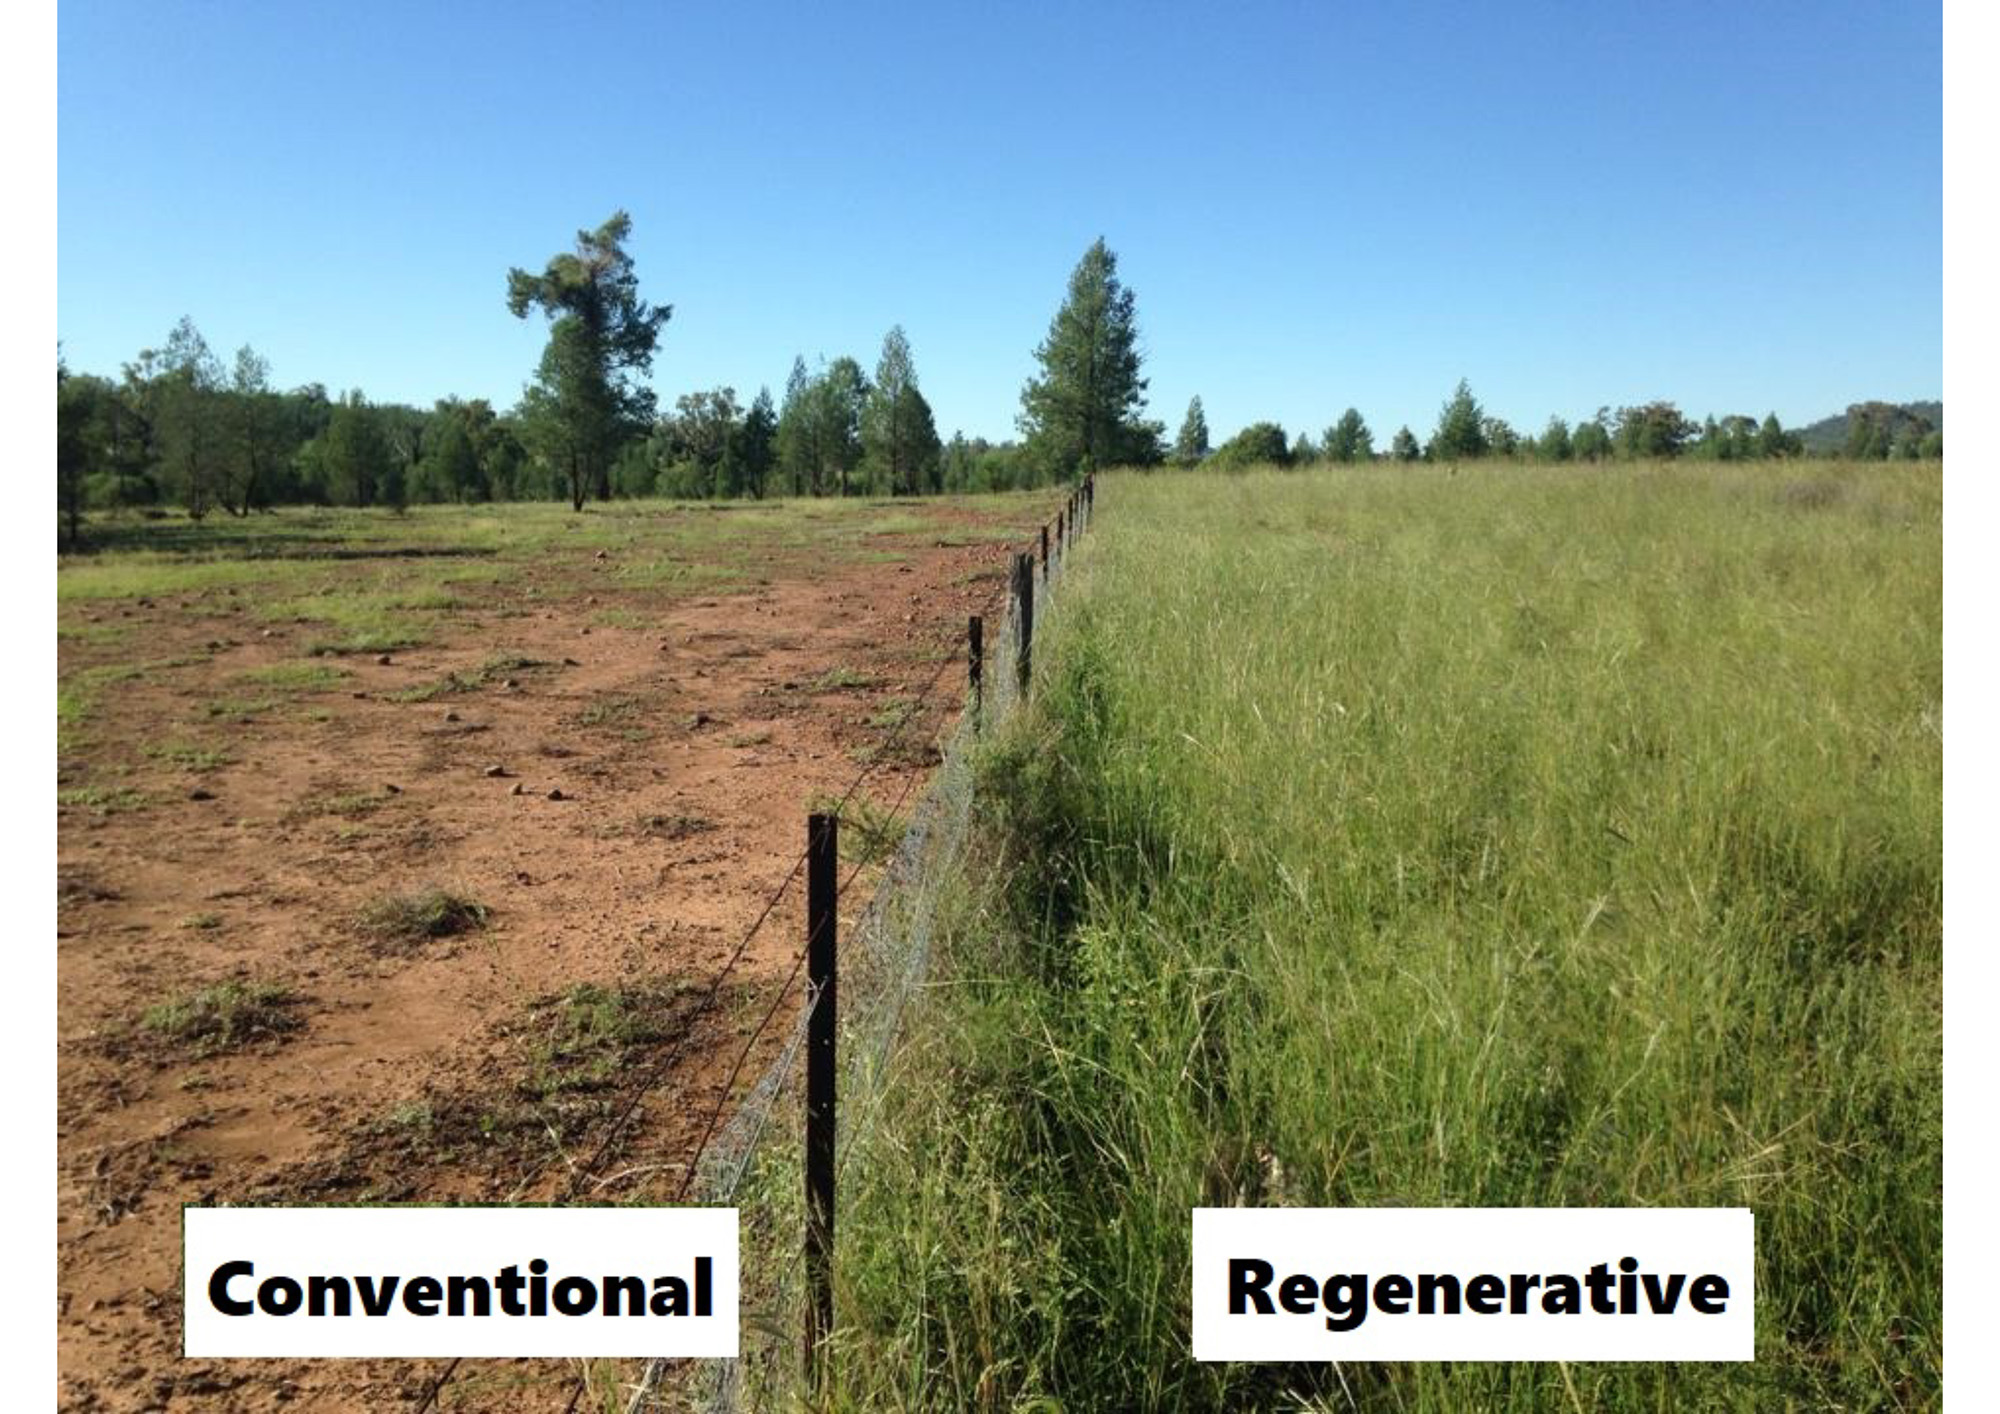 REGENERATIVE AGRICULTURE and RECOVERING FROM FIRE